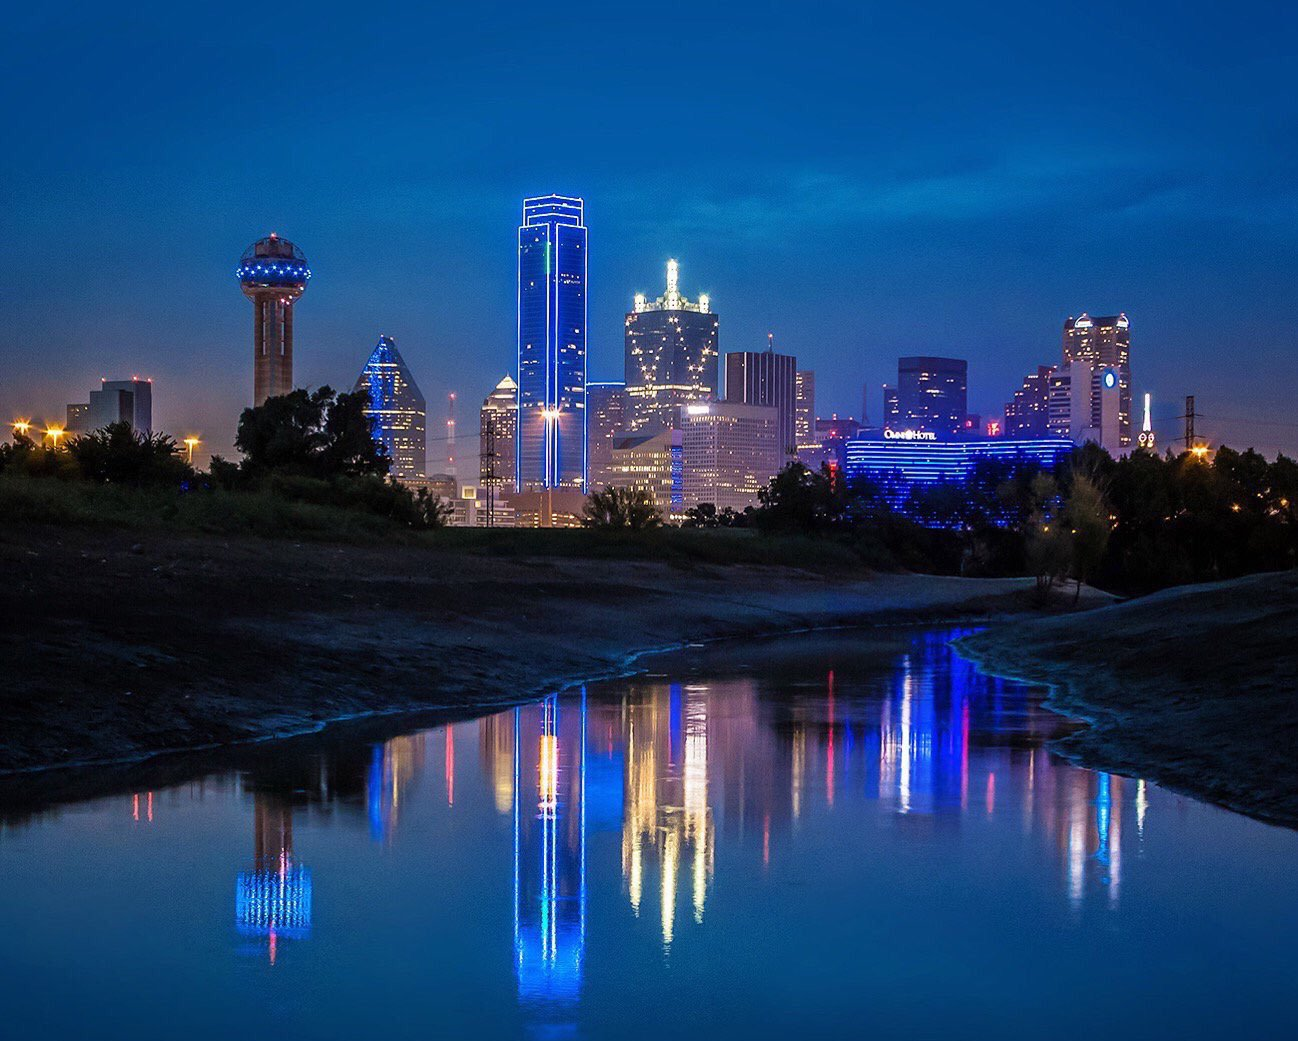 Dallas in mourning in blue